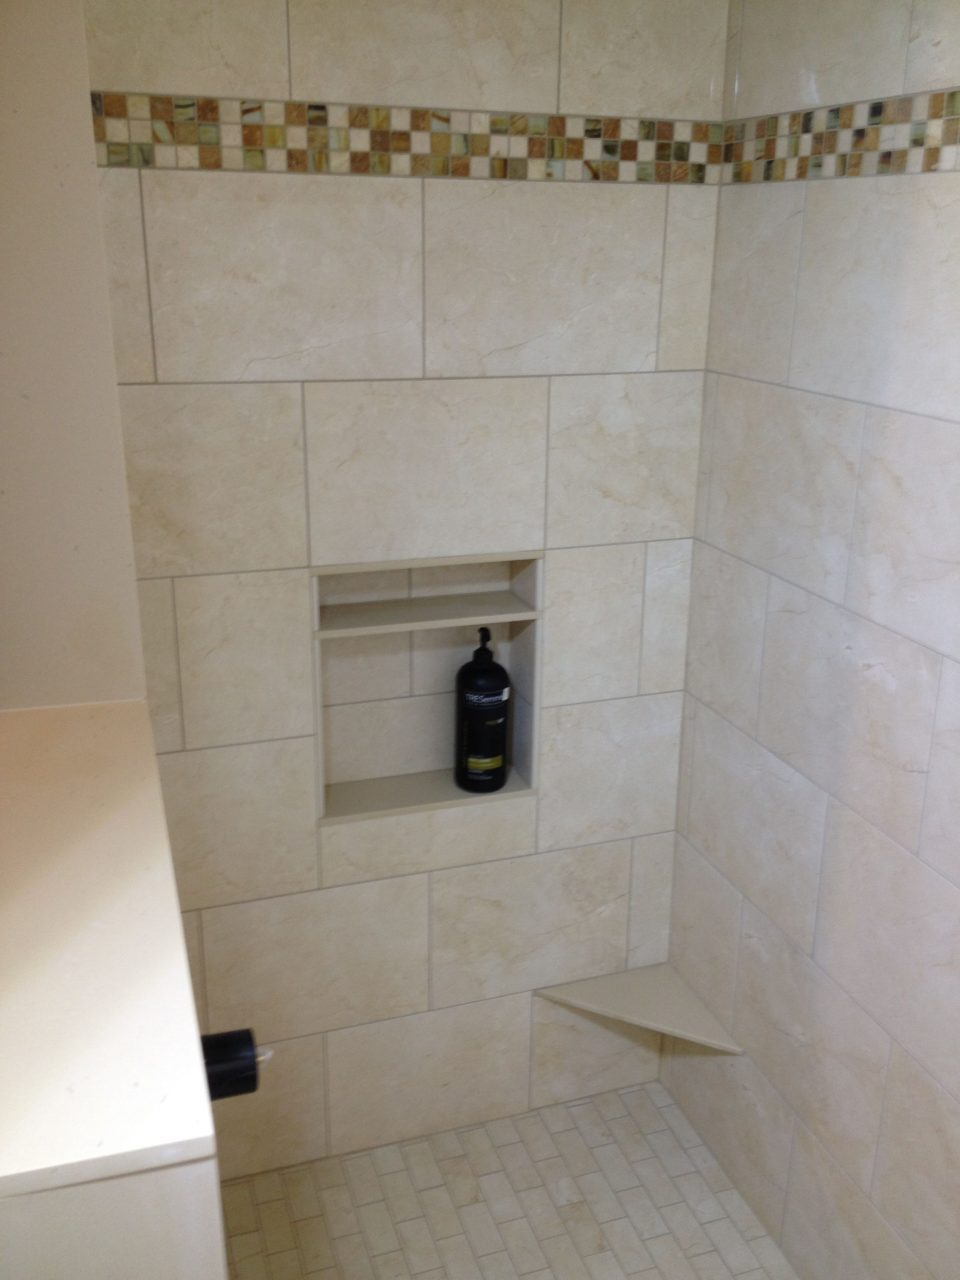 Shower With Accent Border Niche And Foot Rest For Shaving Our